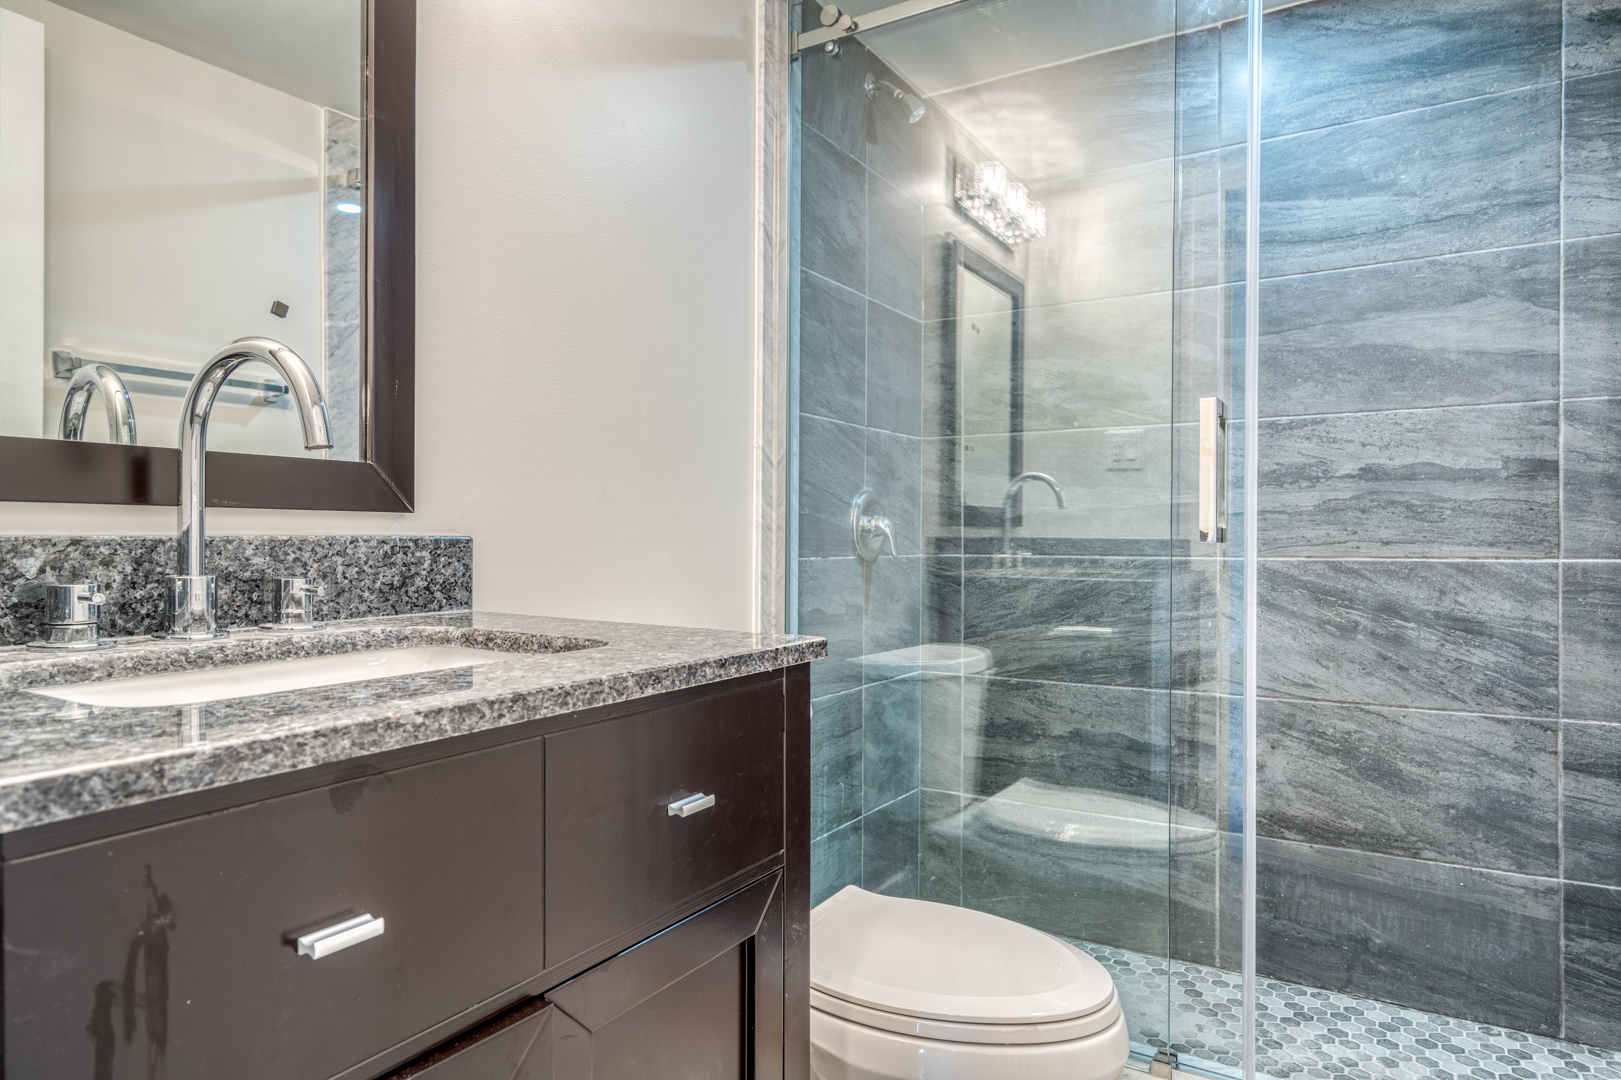 2 bedroom unit #202 – $1,575.00 + Hydro (luxuriously renovated and very spacious) Available immediately.